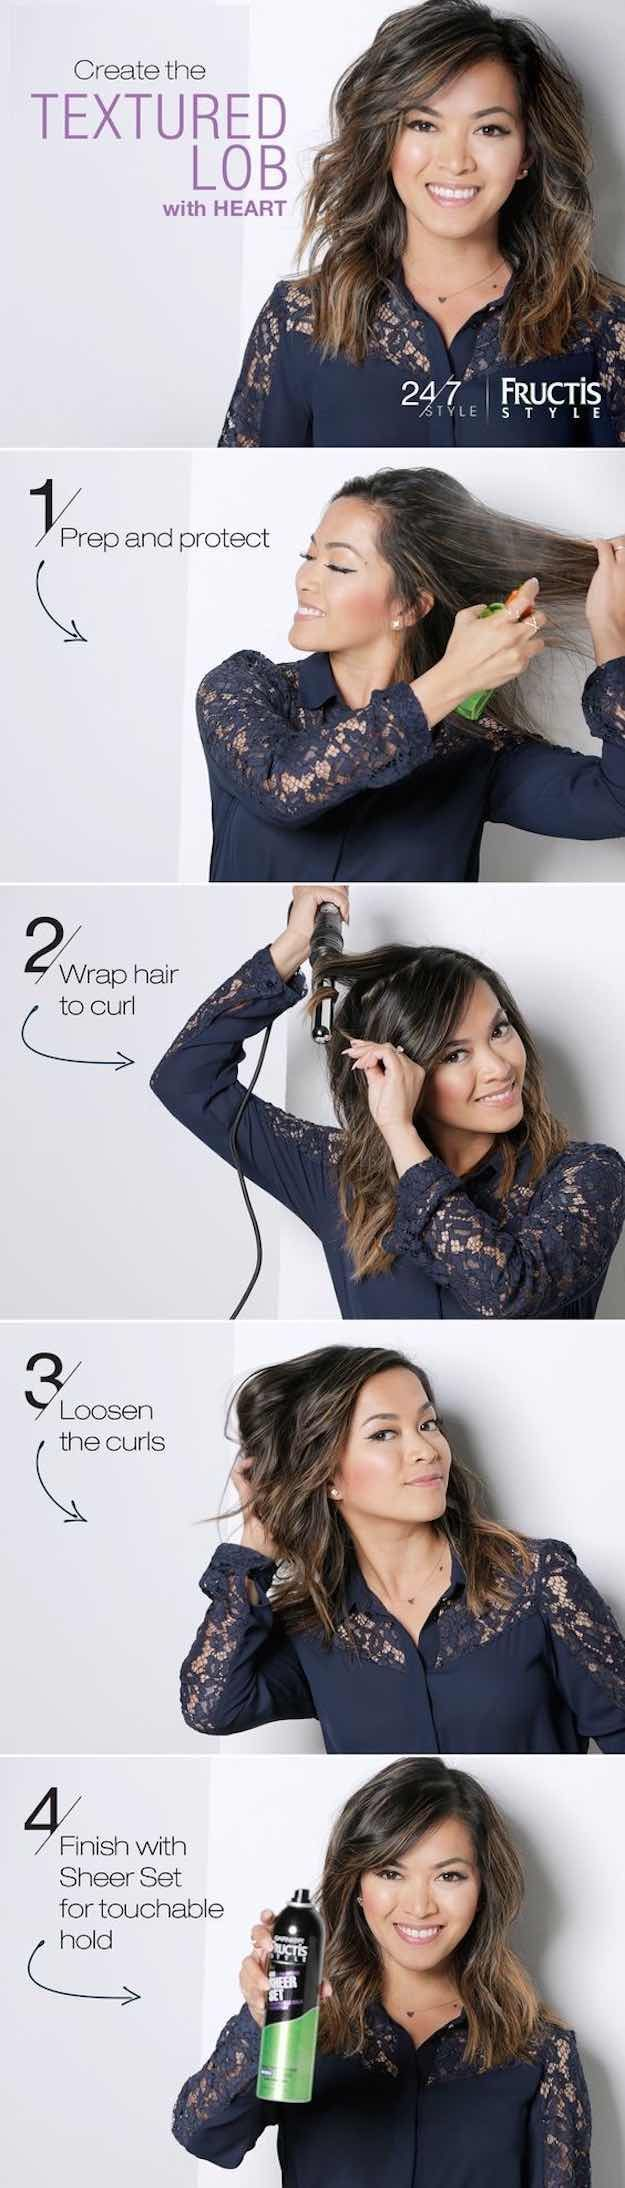 41 Lob Haircut Ideas For Women - TEXTURED LOB HAIRSTYLE TUTORIAL WITH HEART DEFENSOR 24/7 STYLE -What is a lob? Step by step easy tutorials on how to cut your hair for a lob haircut and amazing ideas for layered, and straight lobs. Ideas for lobs with b